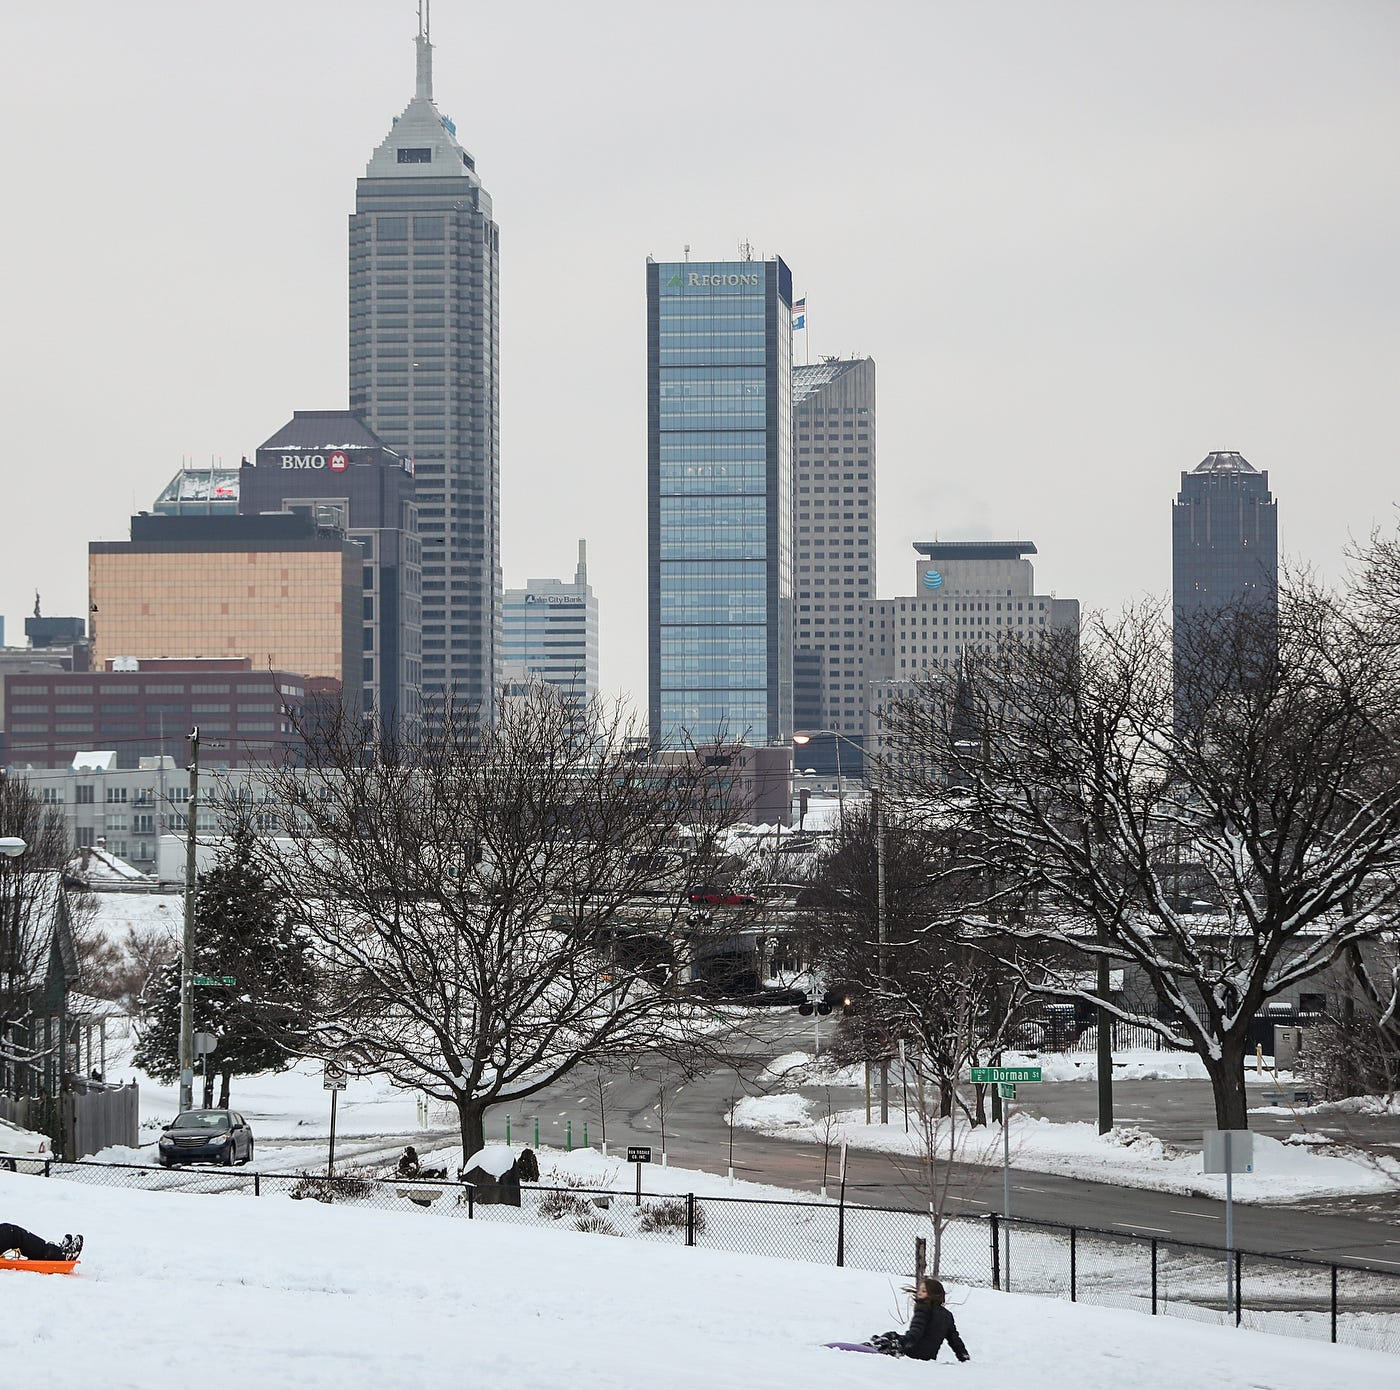 Indianapolis weather: We could see more snow before the weekend